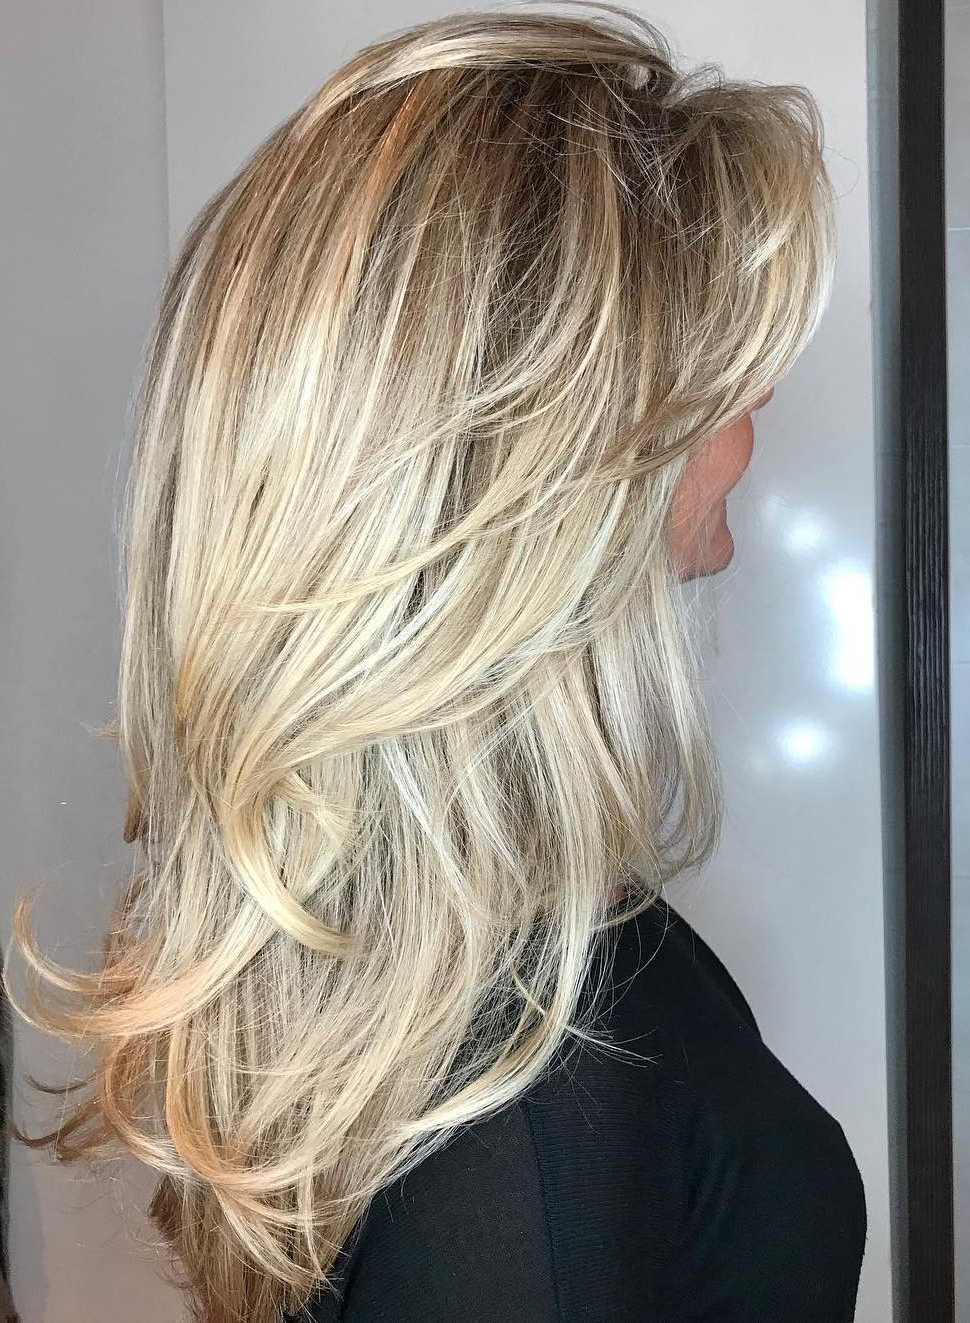 50 Cute Long Layered Haircuts With Bangs 2019 Throughout Widely Used Sleek Straight And Long Layers Hairstyles (View 7 of 20)